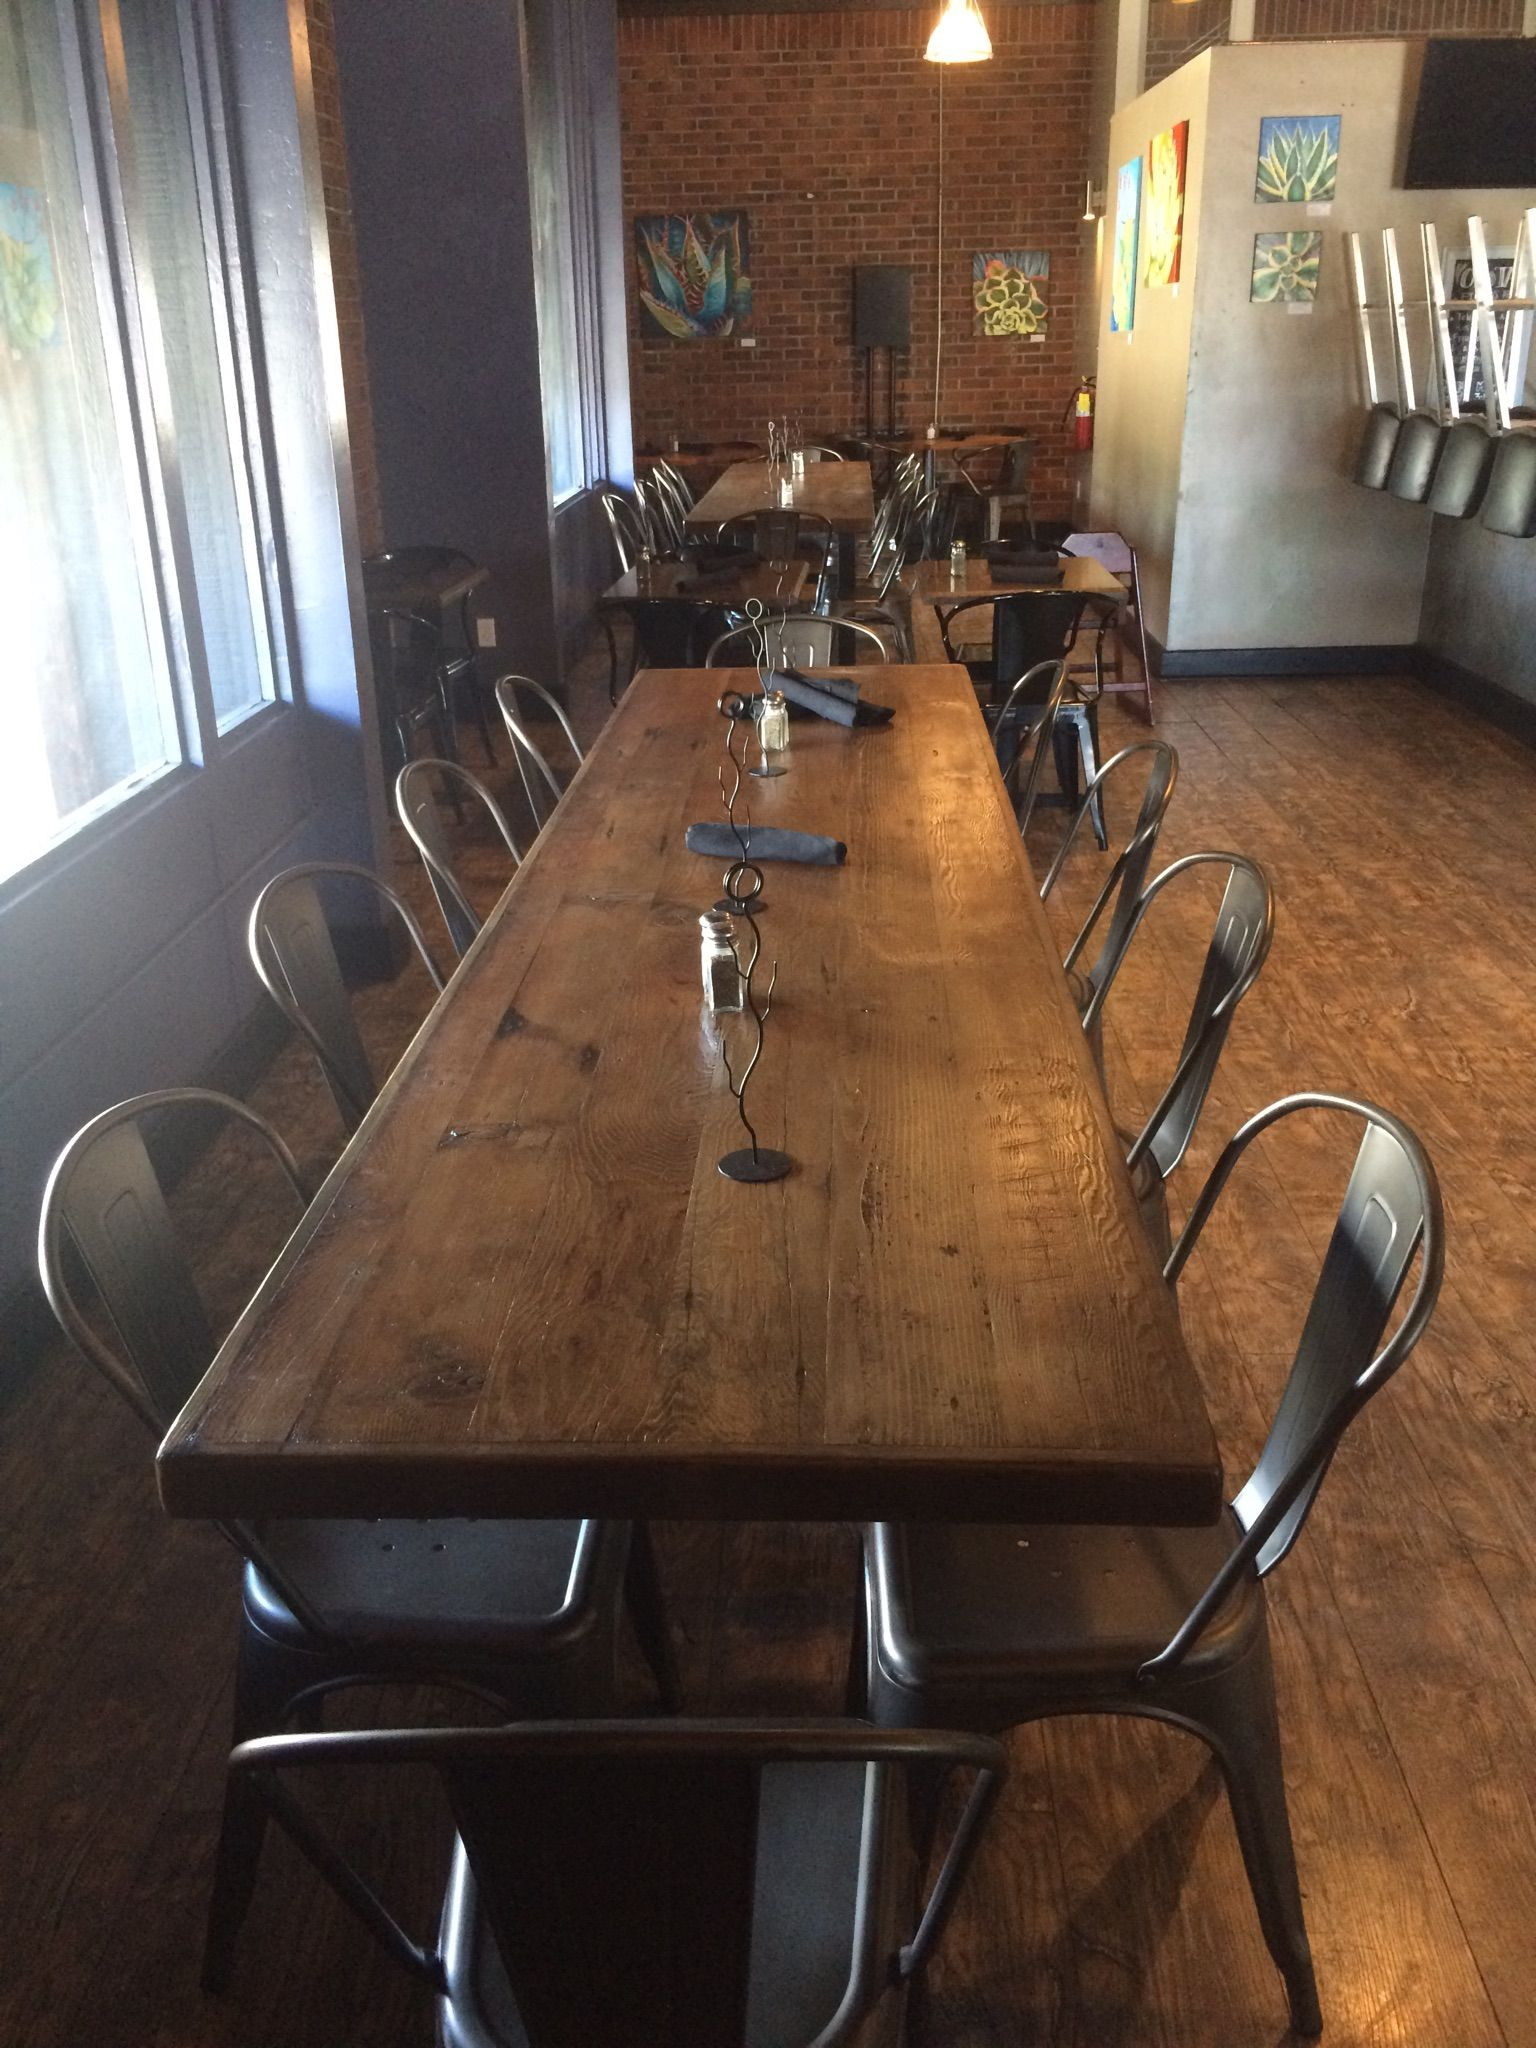 Reclaimed Wood Table Top Straight Planks RC Supplies Online - Table top for restaurant supply